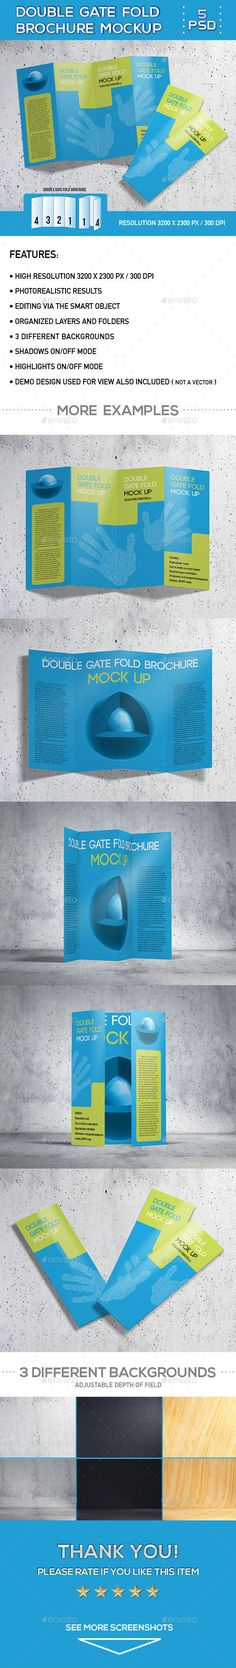 Double Gatefold Brochure Mock Up 2 | Mockup, Brochures And Design Layouts